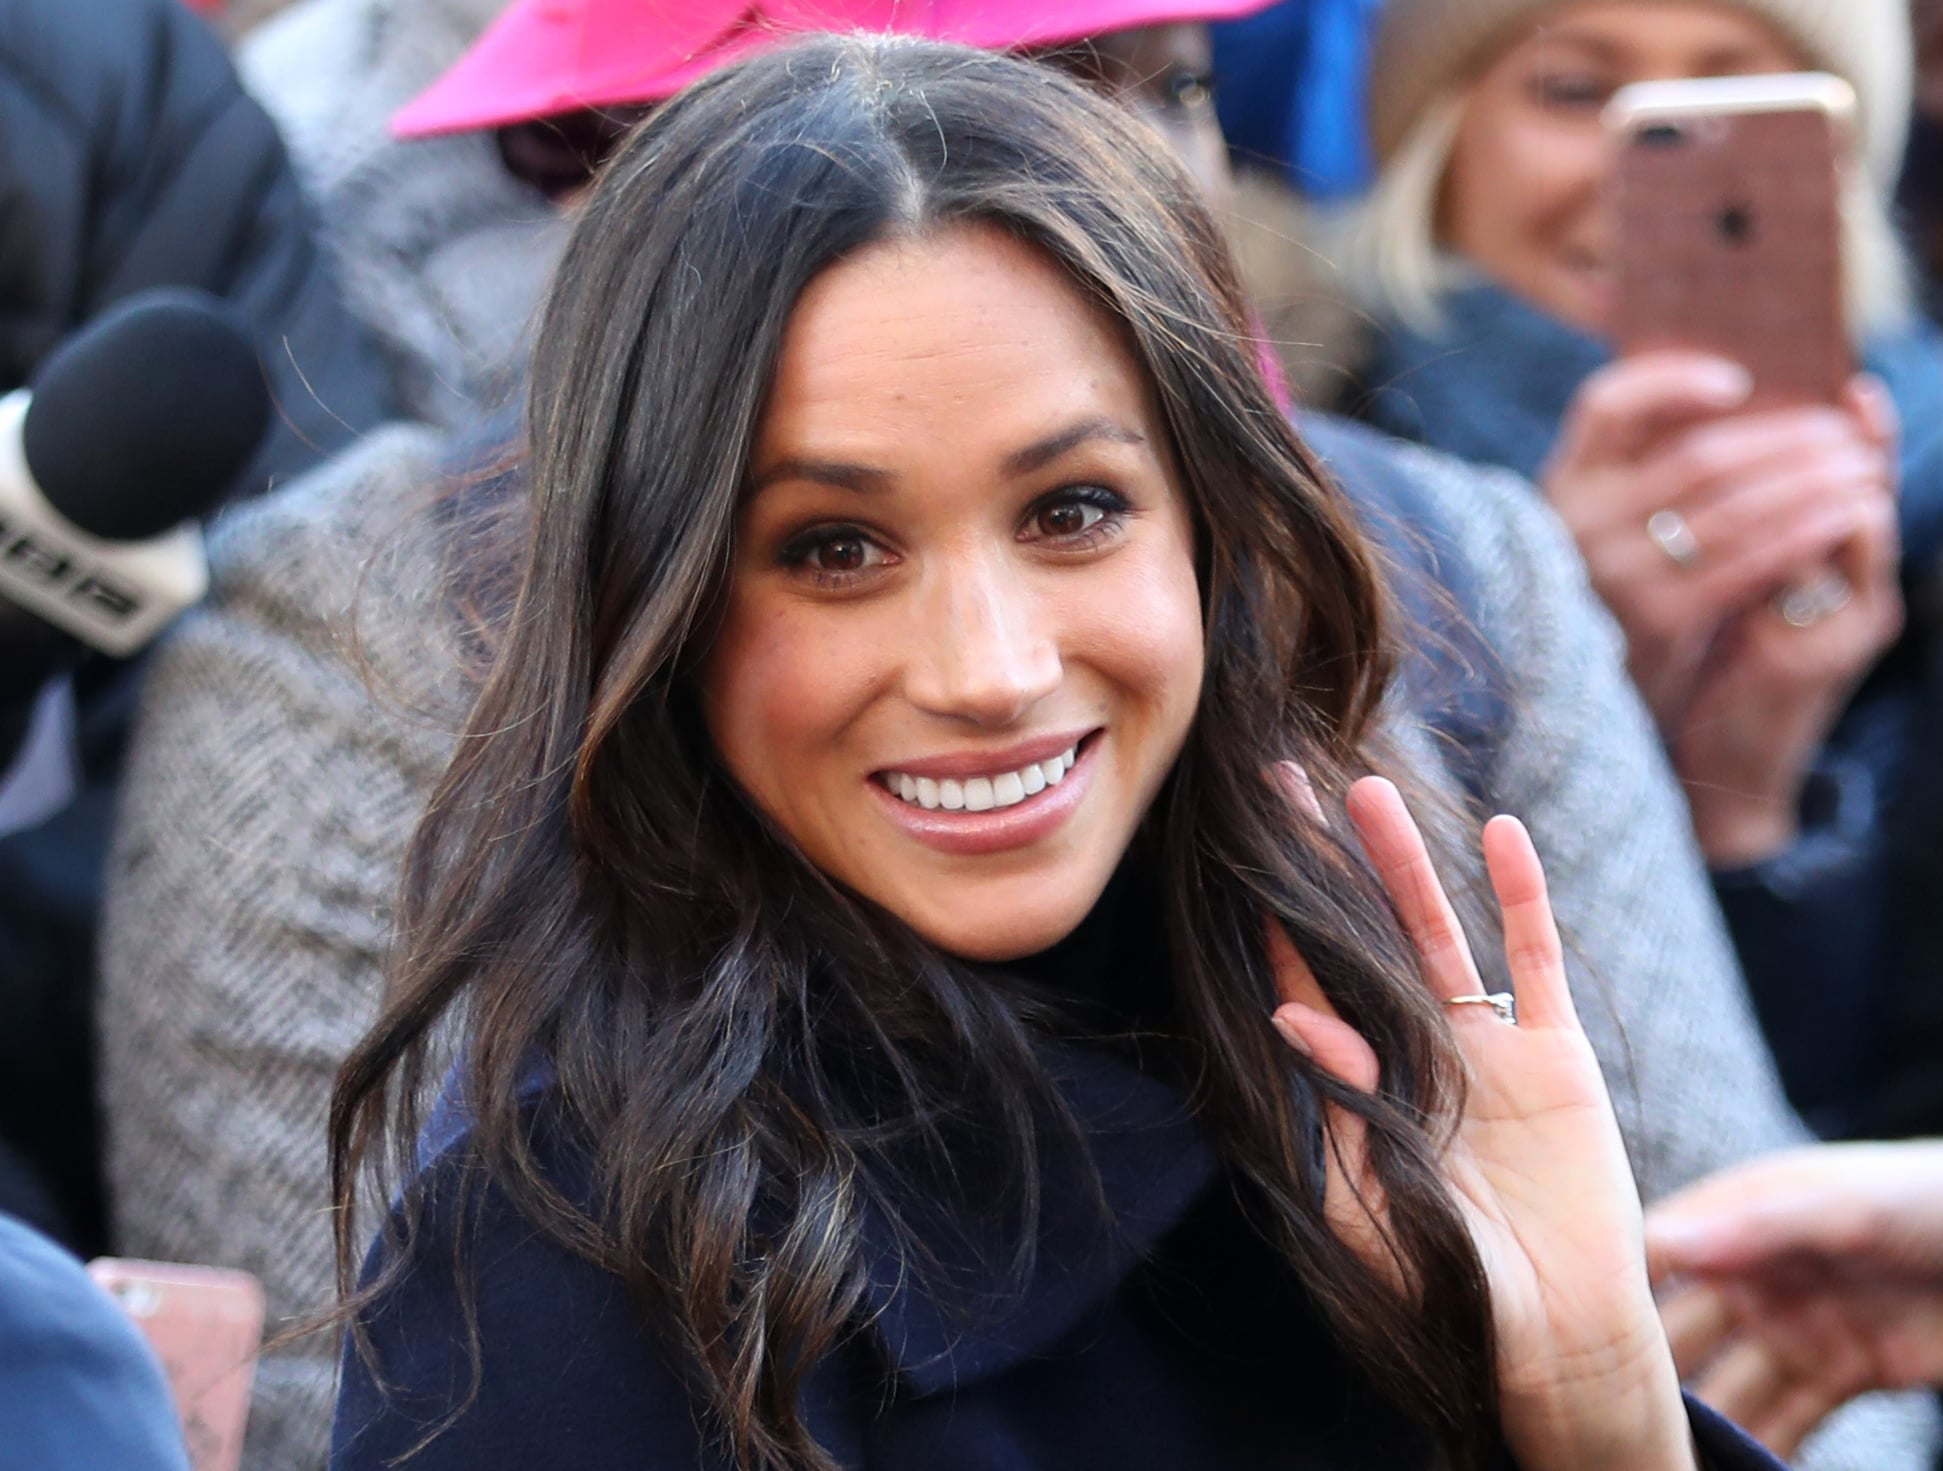 Yes, Meghan Markle Will Be Having a Bachelorette Party - but It Won't Be a Typical Send-Off